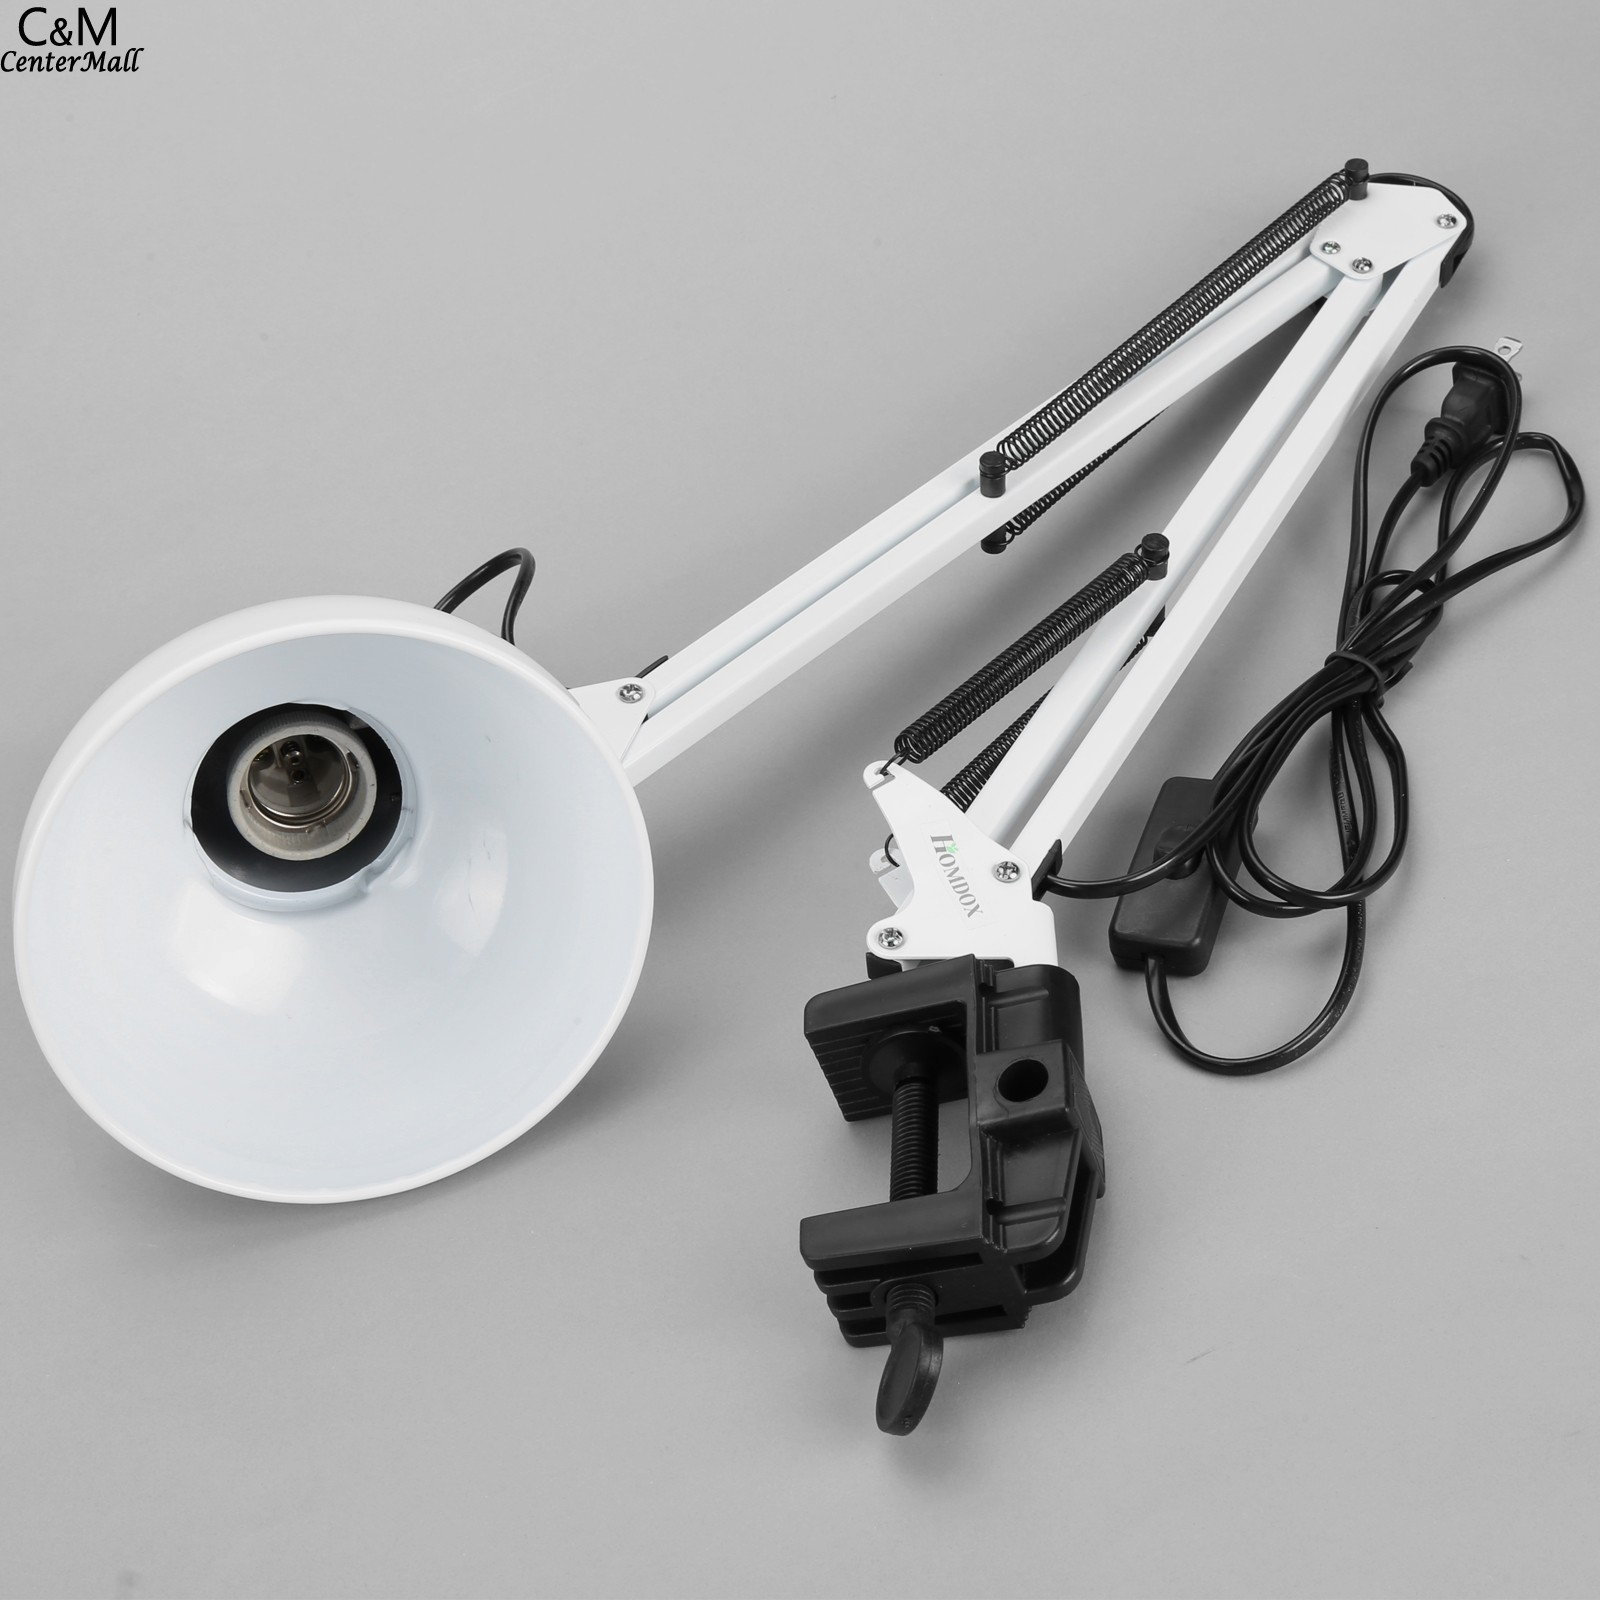 Homdox Desk Lamps Adjustable Arm Drafting Eyes Care Clamp Home ...